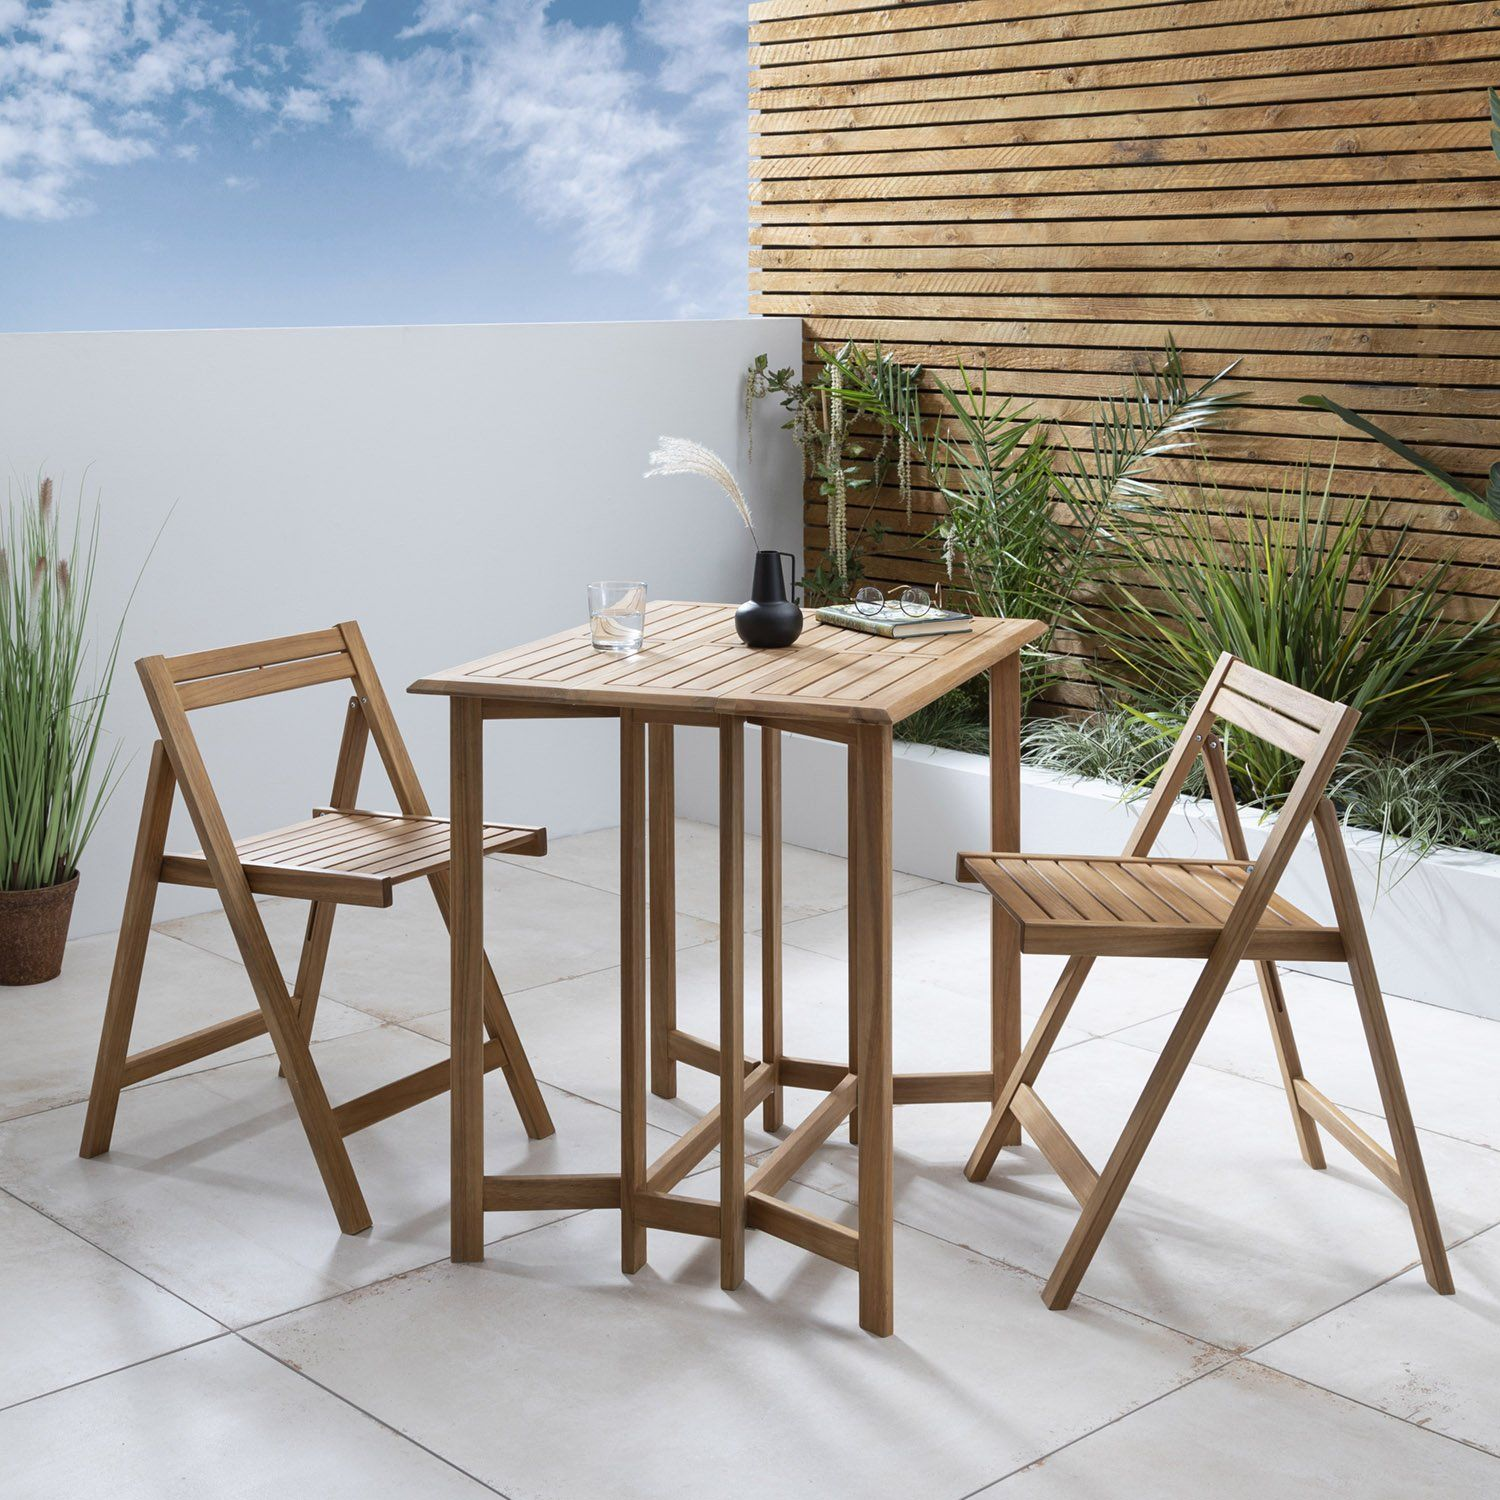 Cosette folding bistro set - acacia wood - Laura James